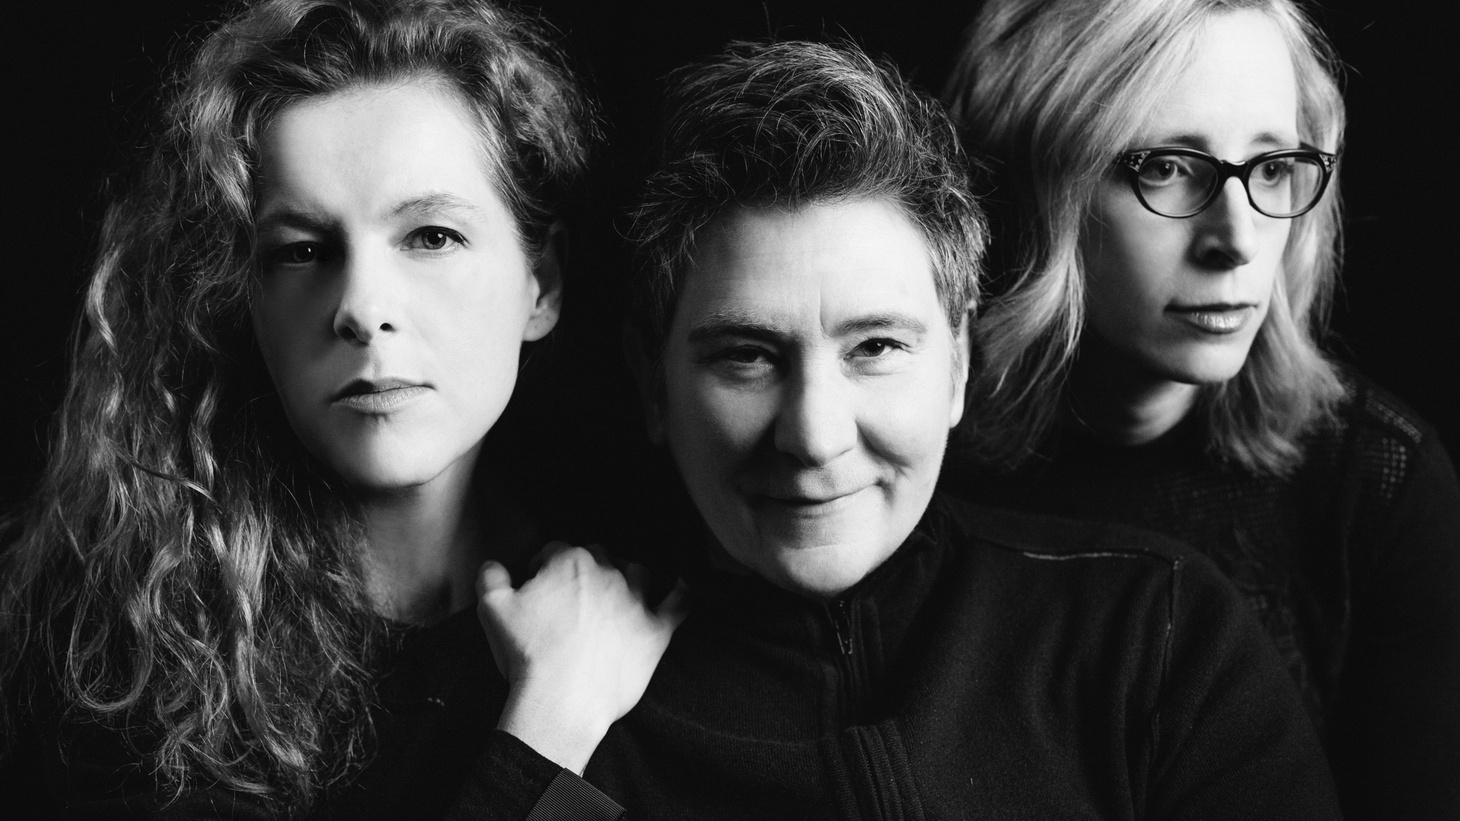 The holy trinity of singers converge as Neko Case, k.d. lang and Laura Veirs come together on 14 beautiful songs.